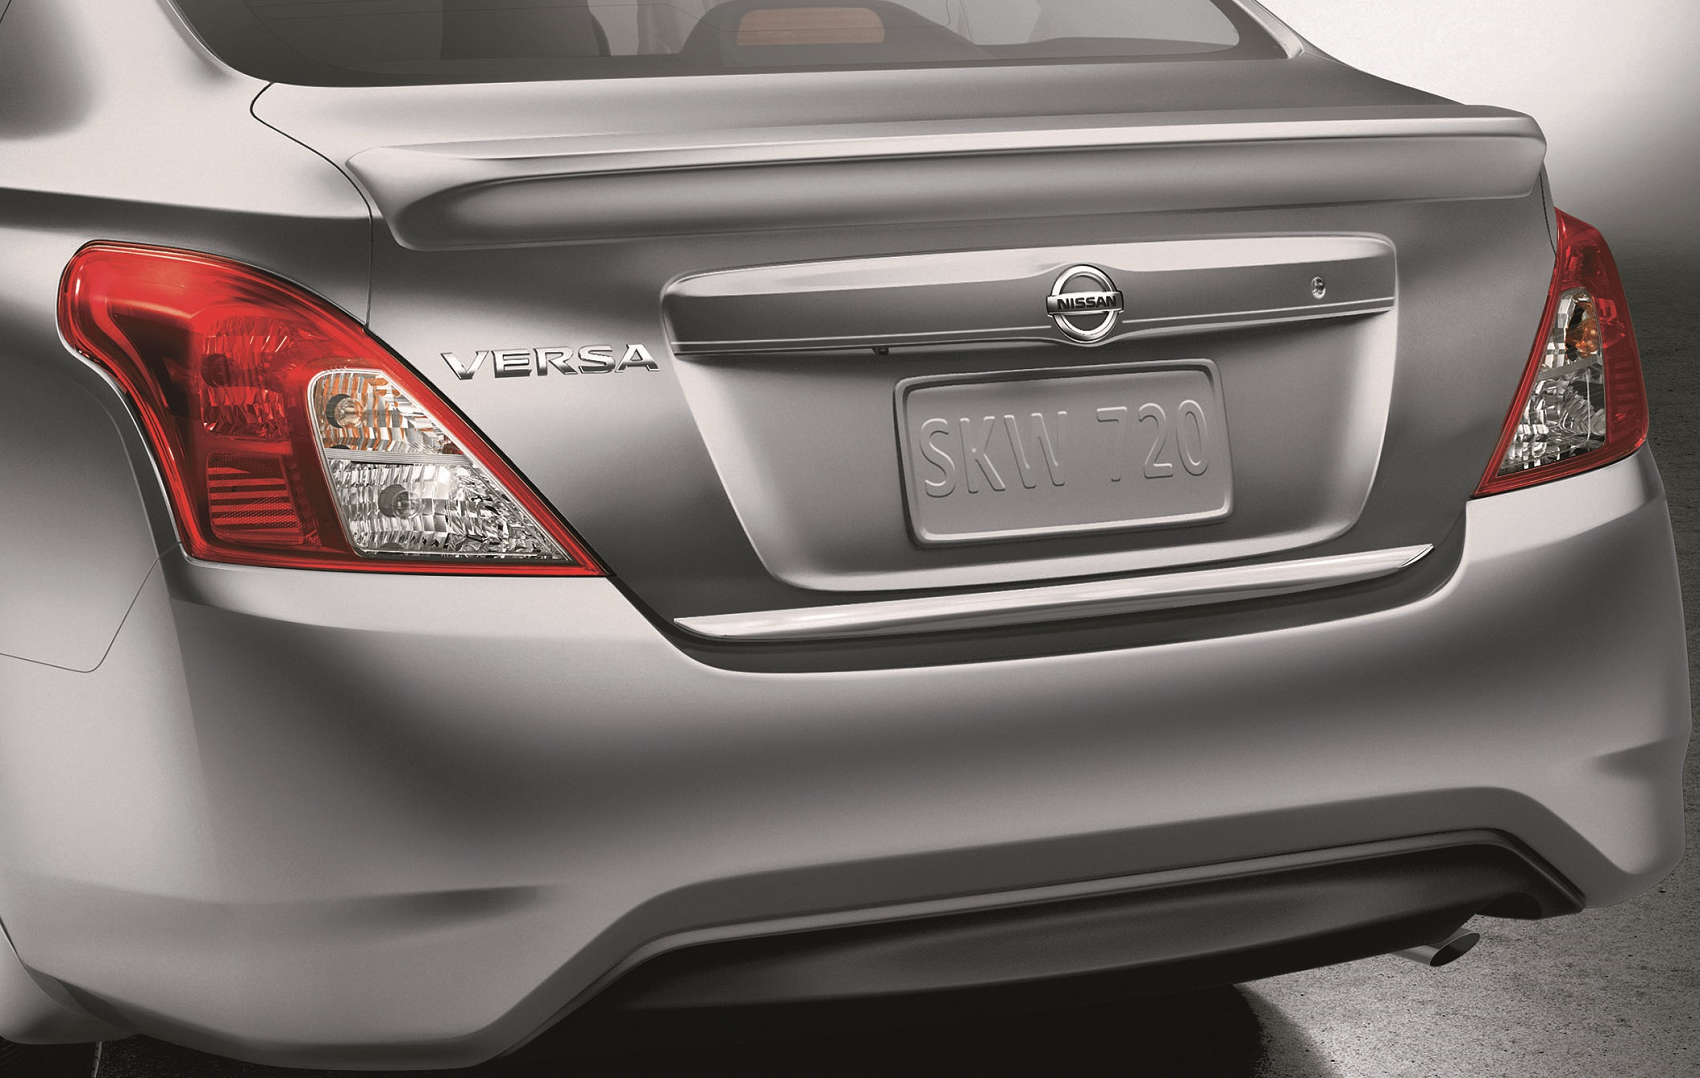 2019 Nissan Versa Rear End